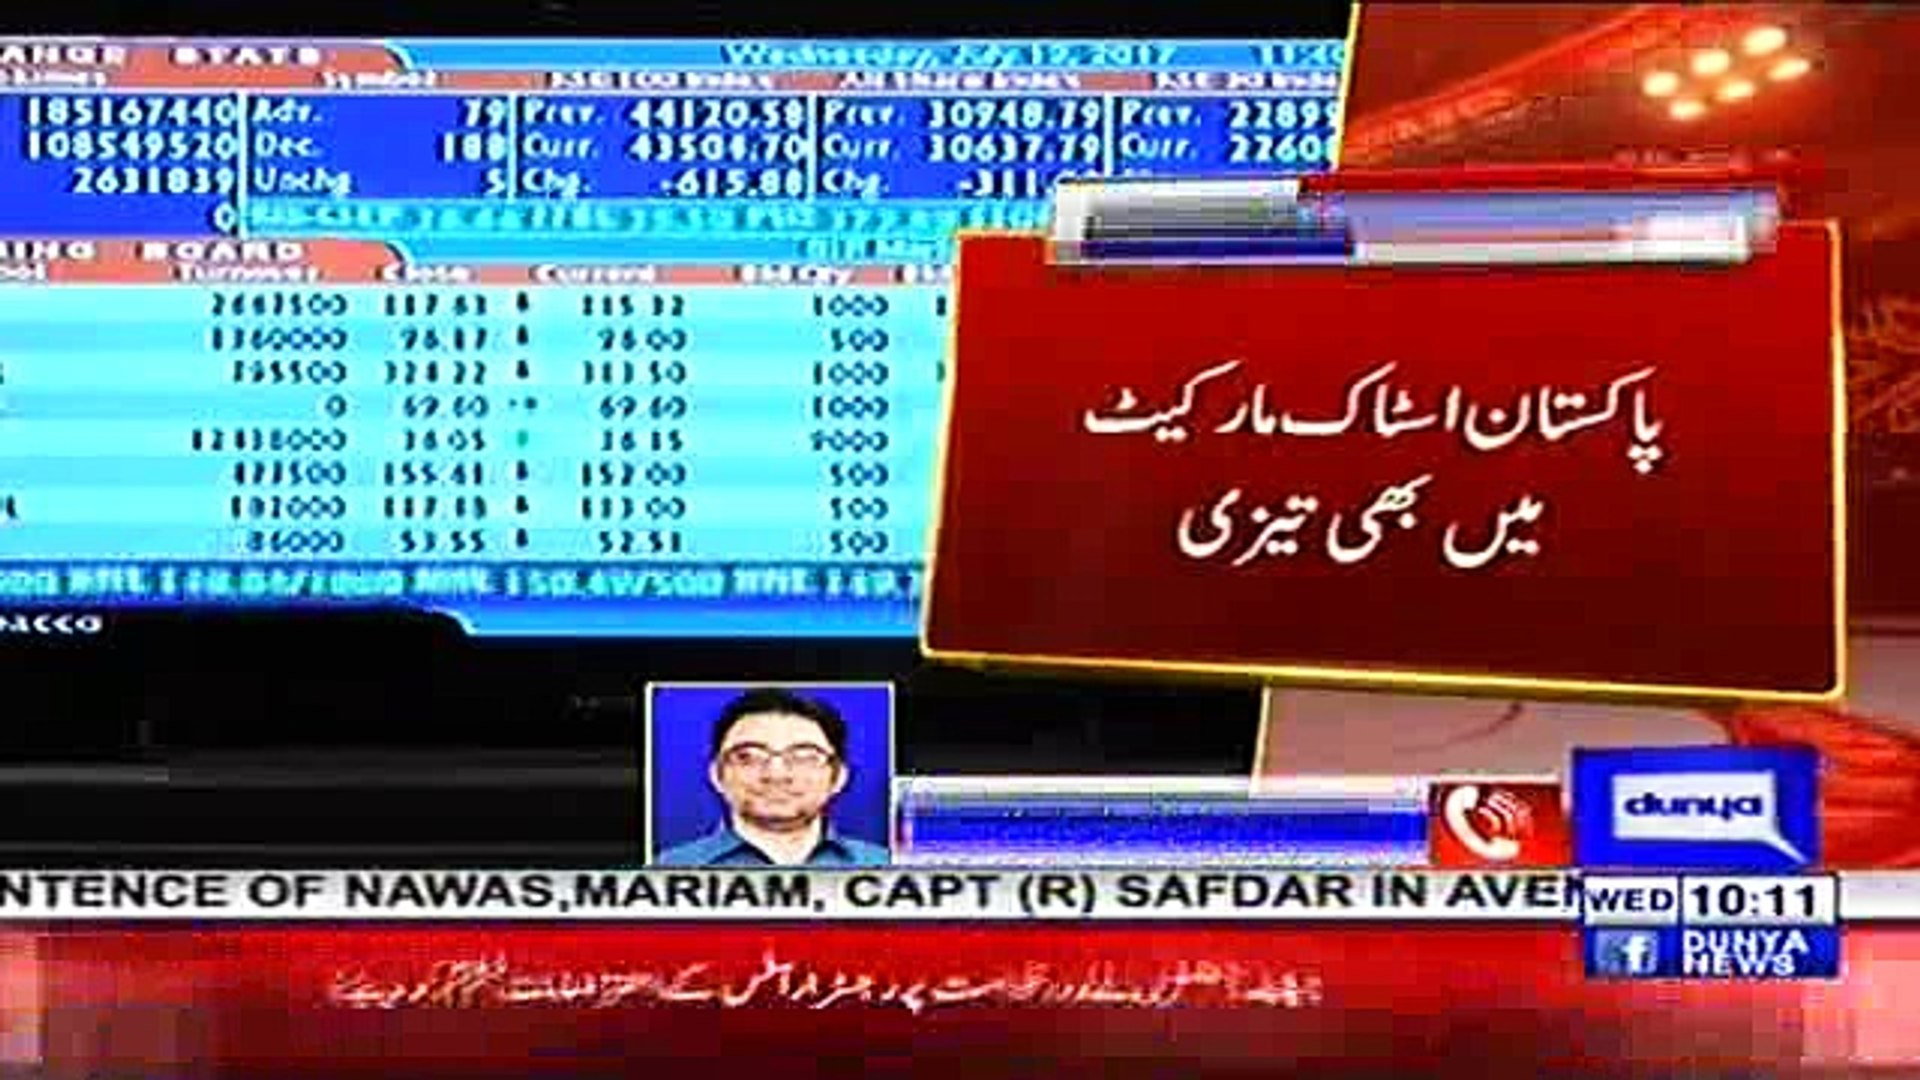 Pakistan Stock Market paces up after Saudi assistance, 100-Index reaches up to level of 38,850 point